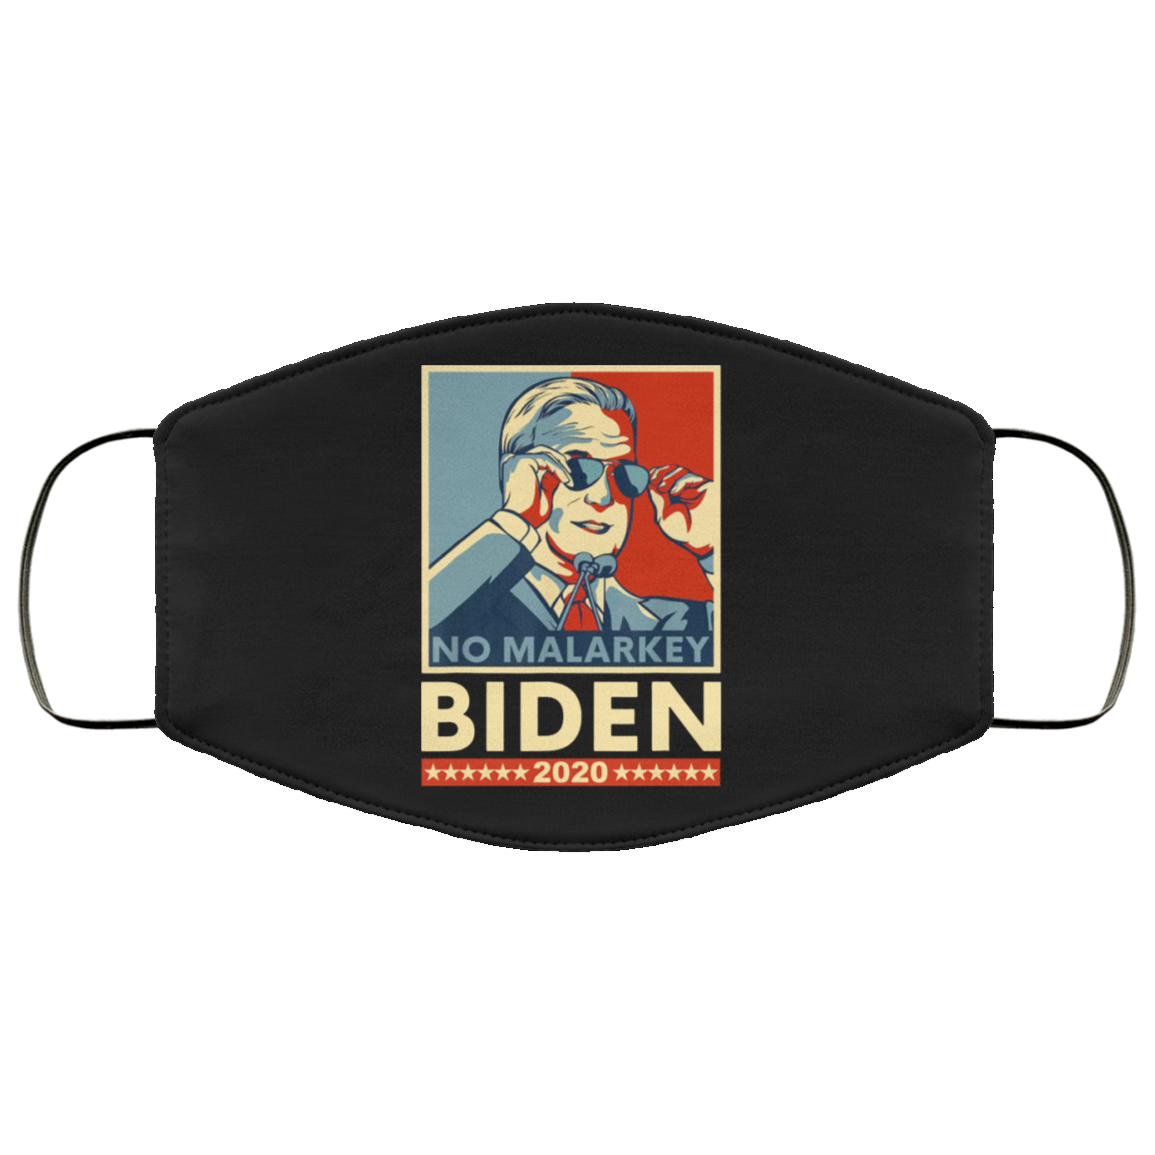 Biden No Malarkey 2020 Face Mask With Sunglasses Cool President Parade Biden Campaign For Sale